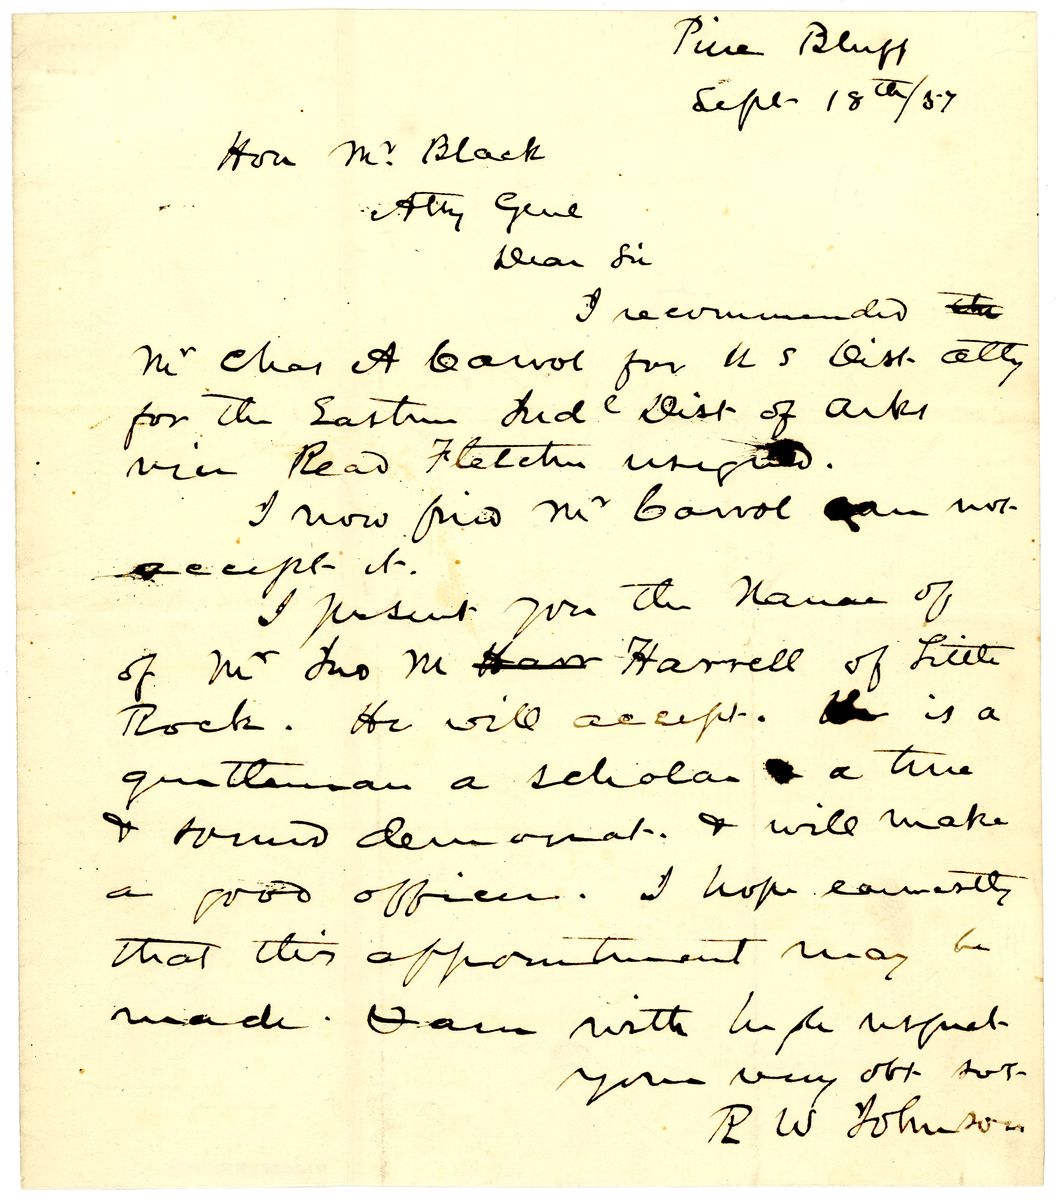 Image: Letter from Robert Ward Johnson to Jeremiah Black